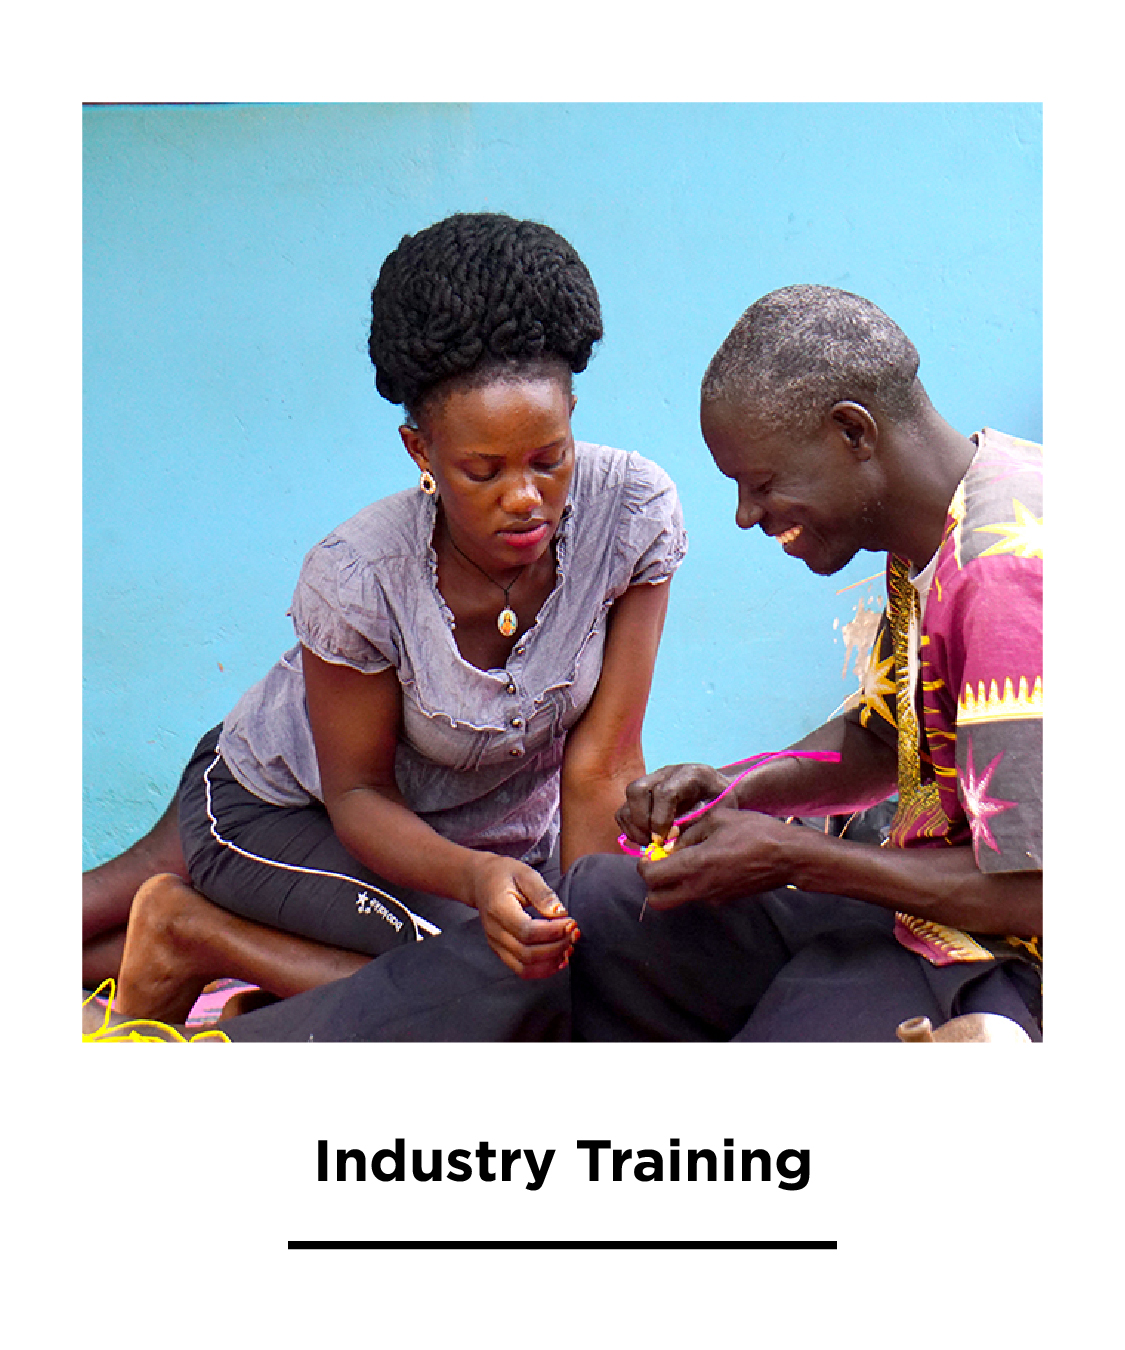 We are currently witnessing the power of Artisans in Uganda overcoming complex obstacles by creating solutions through dignified employment and industry training. We are proud to stand with these artisans who are creating change within their communities.